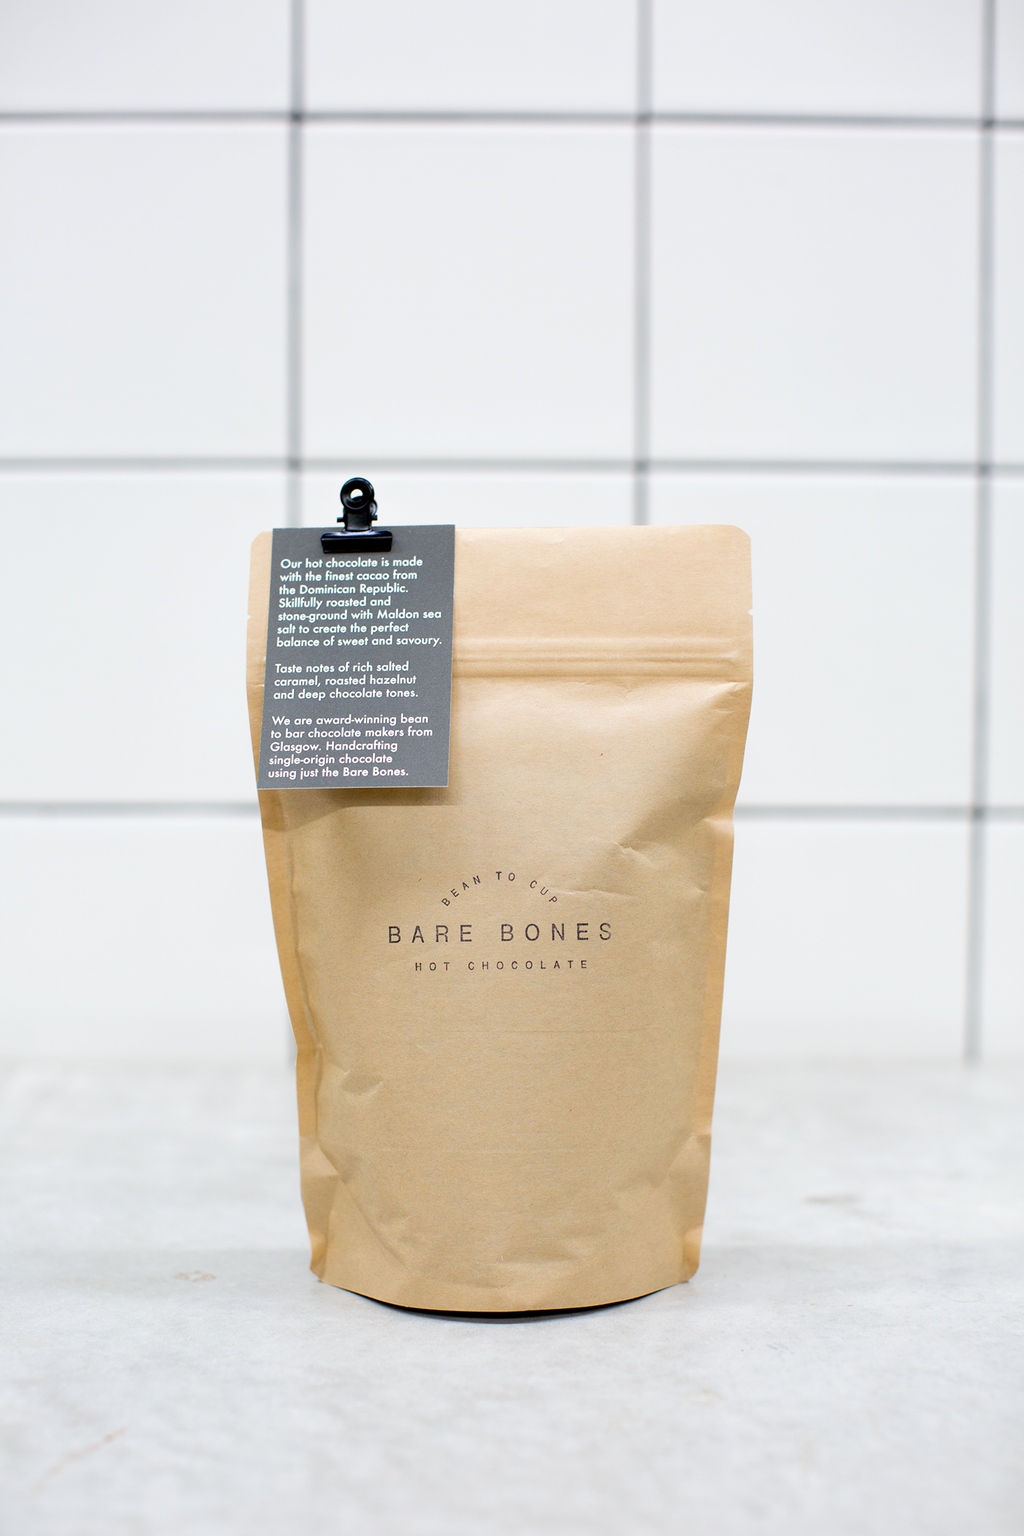 Limited Edition 68% Dominican Republic Salted Hot Chocolate 250g - Bare Bones Chocolate